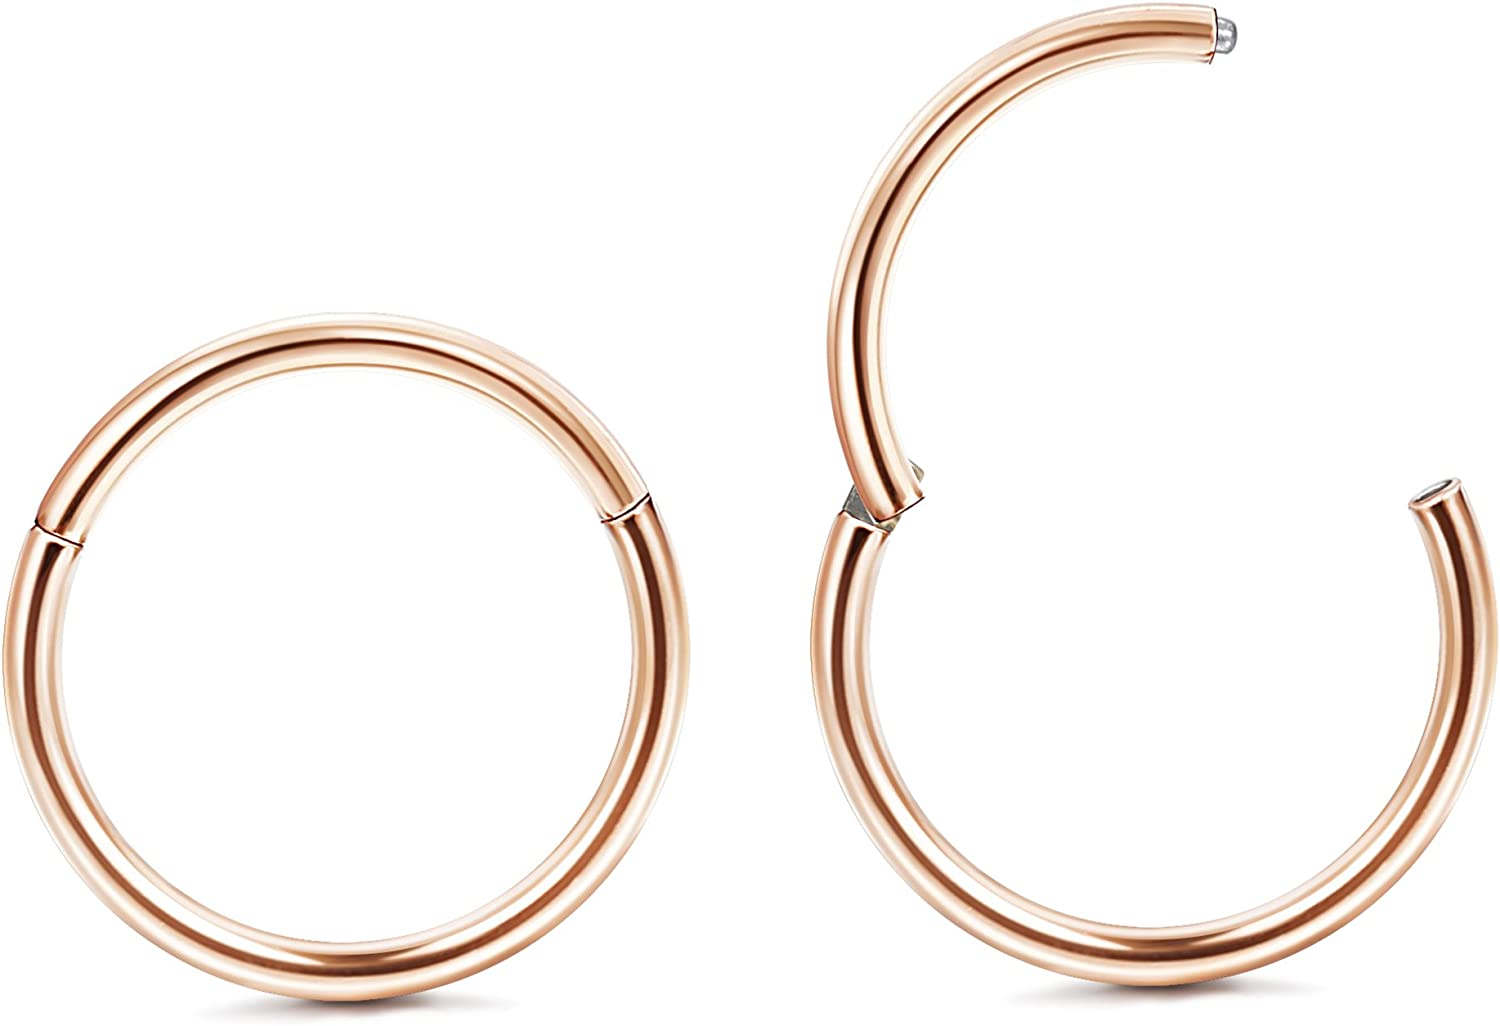 Jstyle 1Pair 20G Stainless Steel Hinged Clicker Segment Nose Ring Hoops Helix Daith Cartilage Tragus Sleeper Earrings Body Piercing